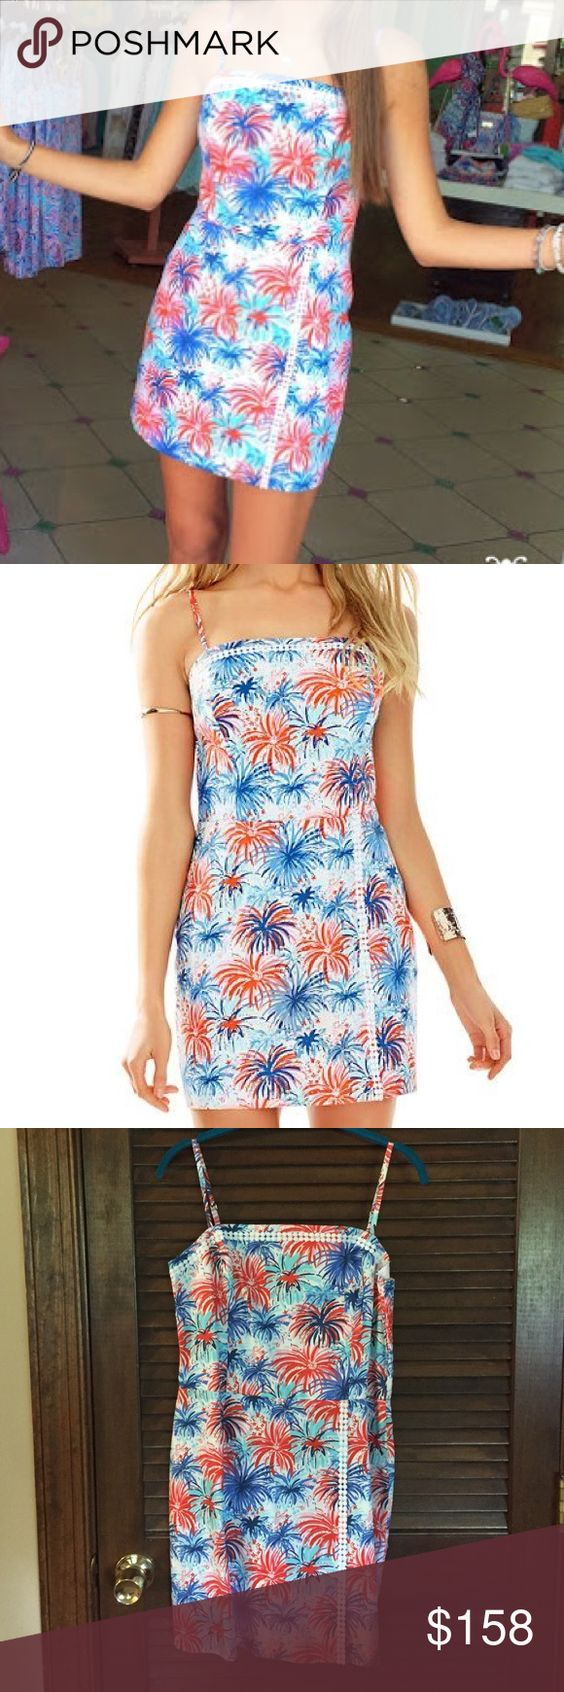 Lilly Pulitzer Jessie romper in Feelin Sparks Brand new with tags attached Lilly Pulitzer Jessie romper in Feelin' Sparks! July 4th dress alert! Perfect to wear for this years Independence Day :) size 8. So comfy and one of my personal favorite 4th of July prints. Offers will be considered! Lilly Pulitzer Dresses Mini